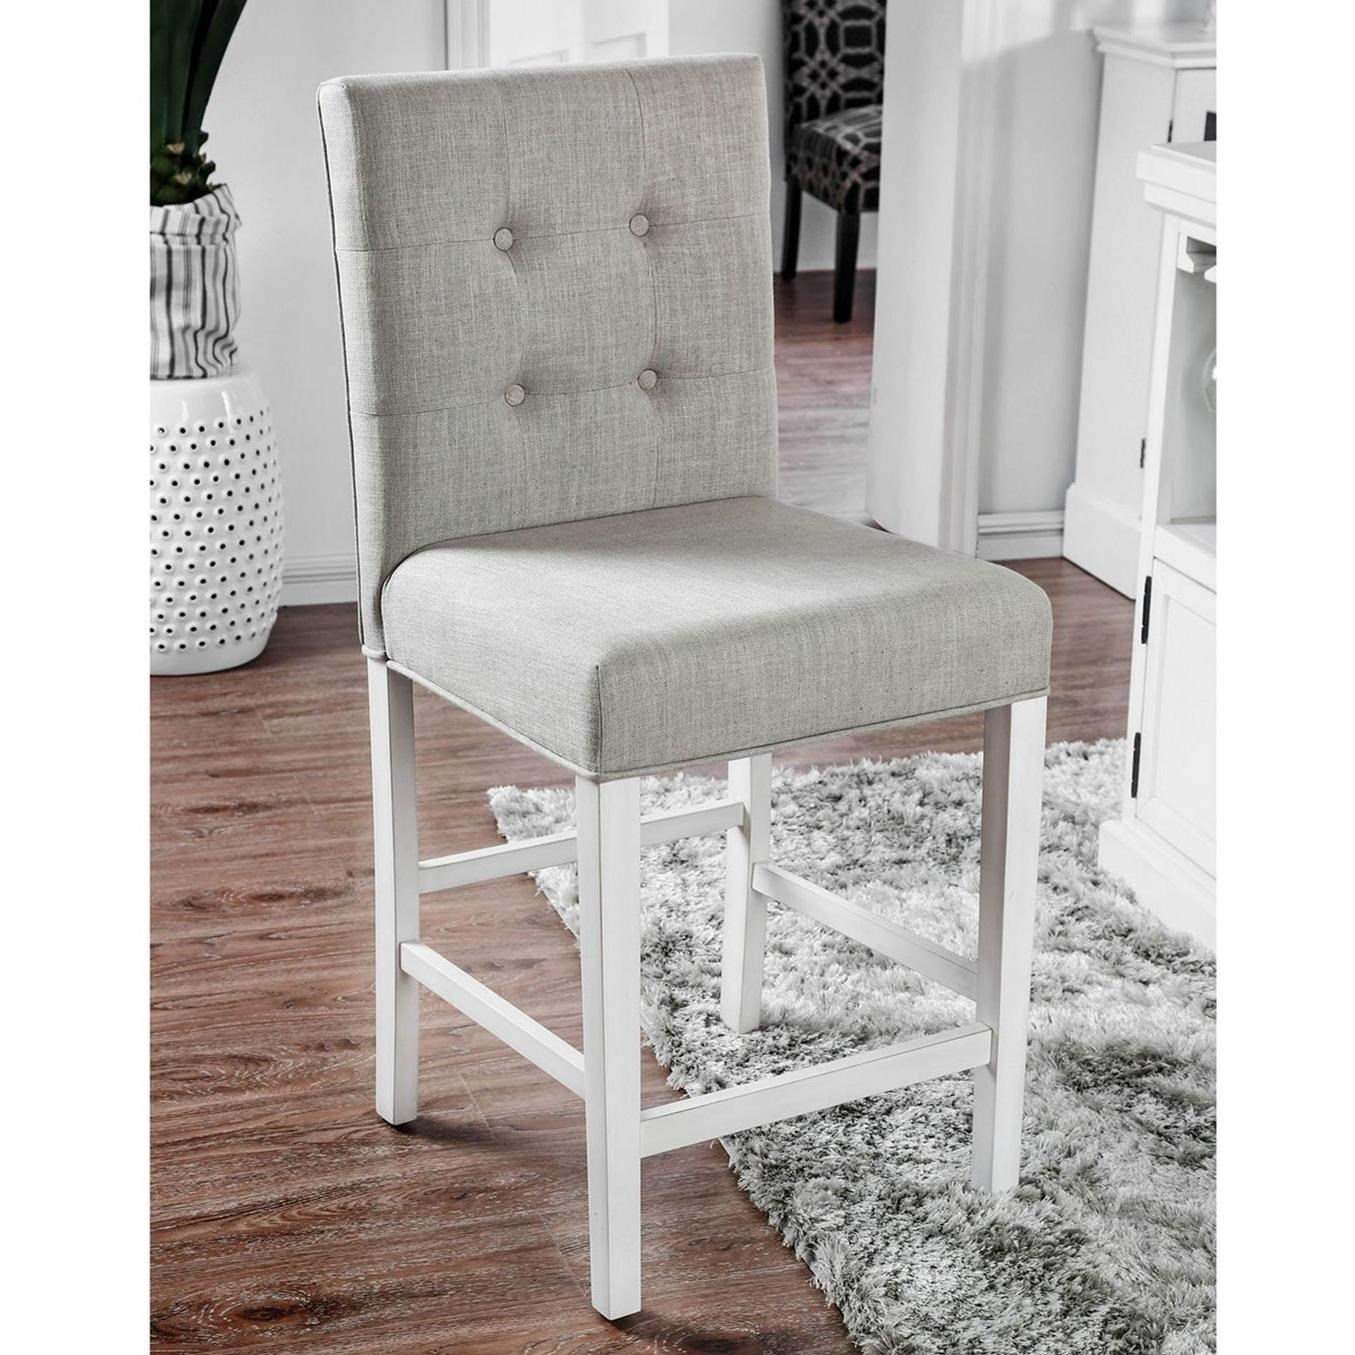 upholstered counter height chairs chair for kid room furniture of america sutton with button tufting